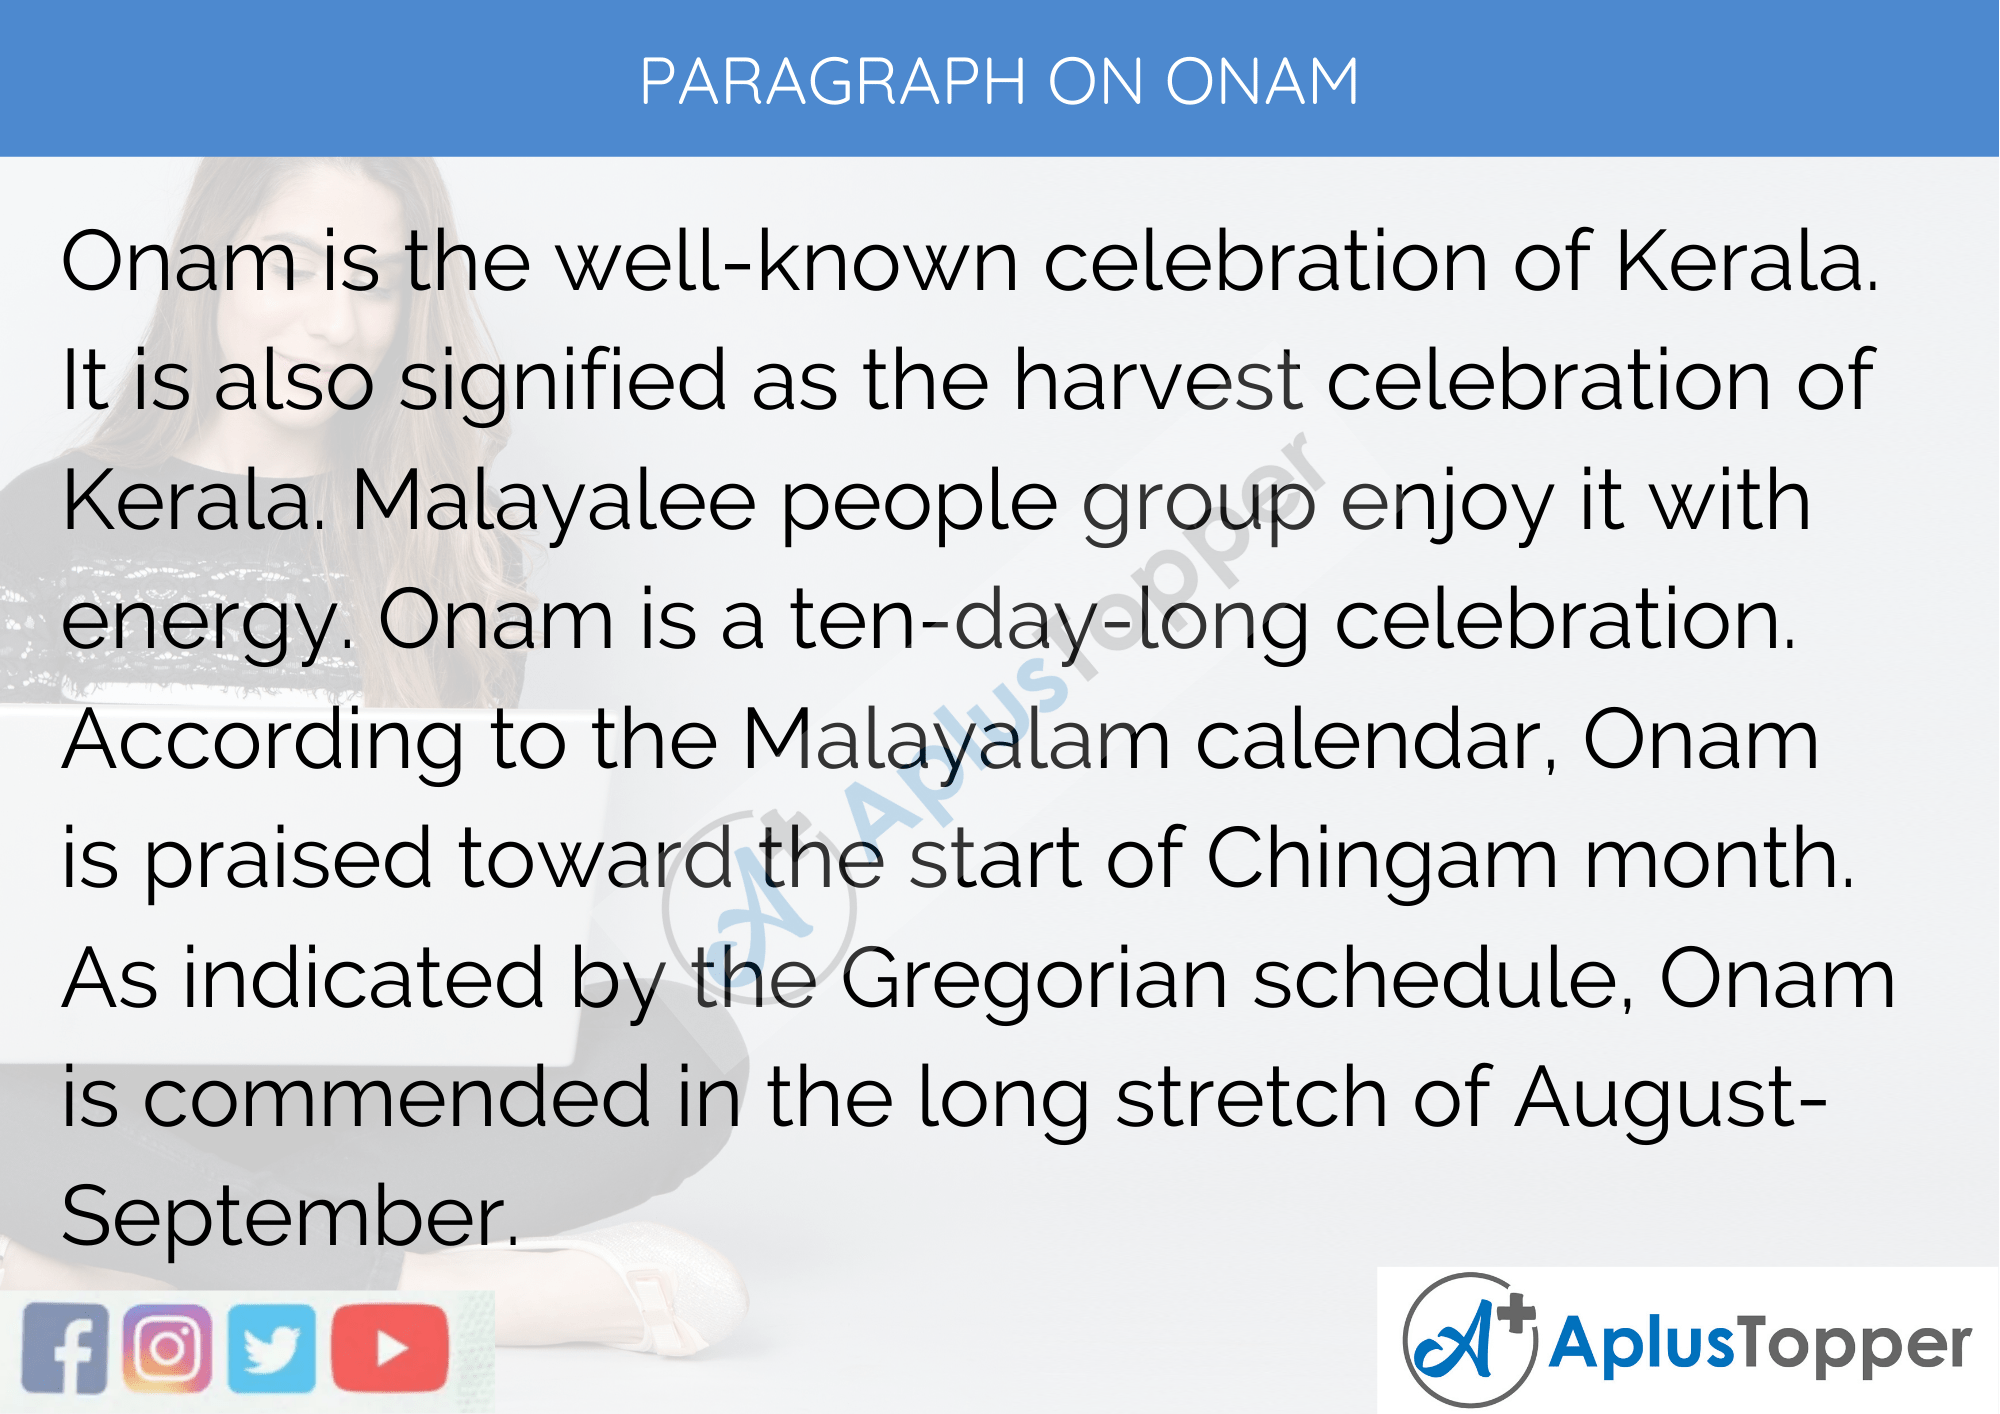 Paragraph On Onam - 100 Words for Classes 1, 2, 3 Kids